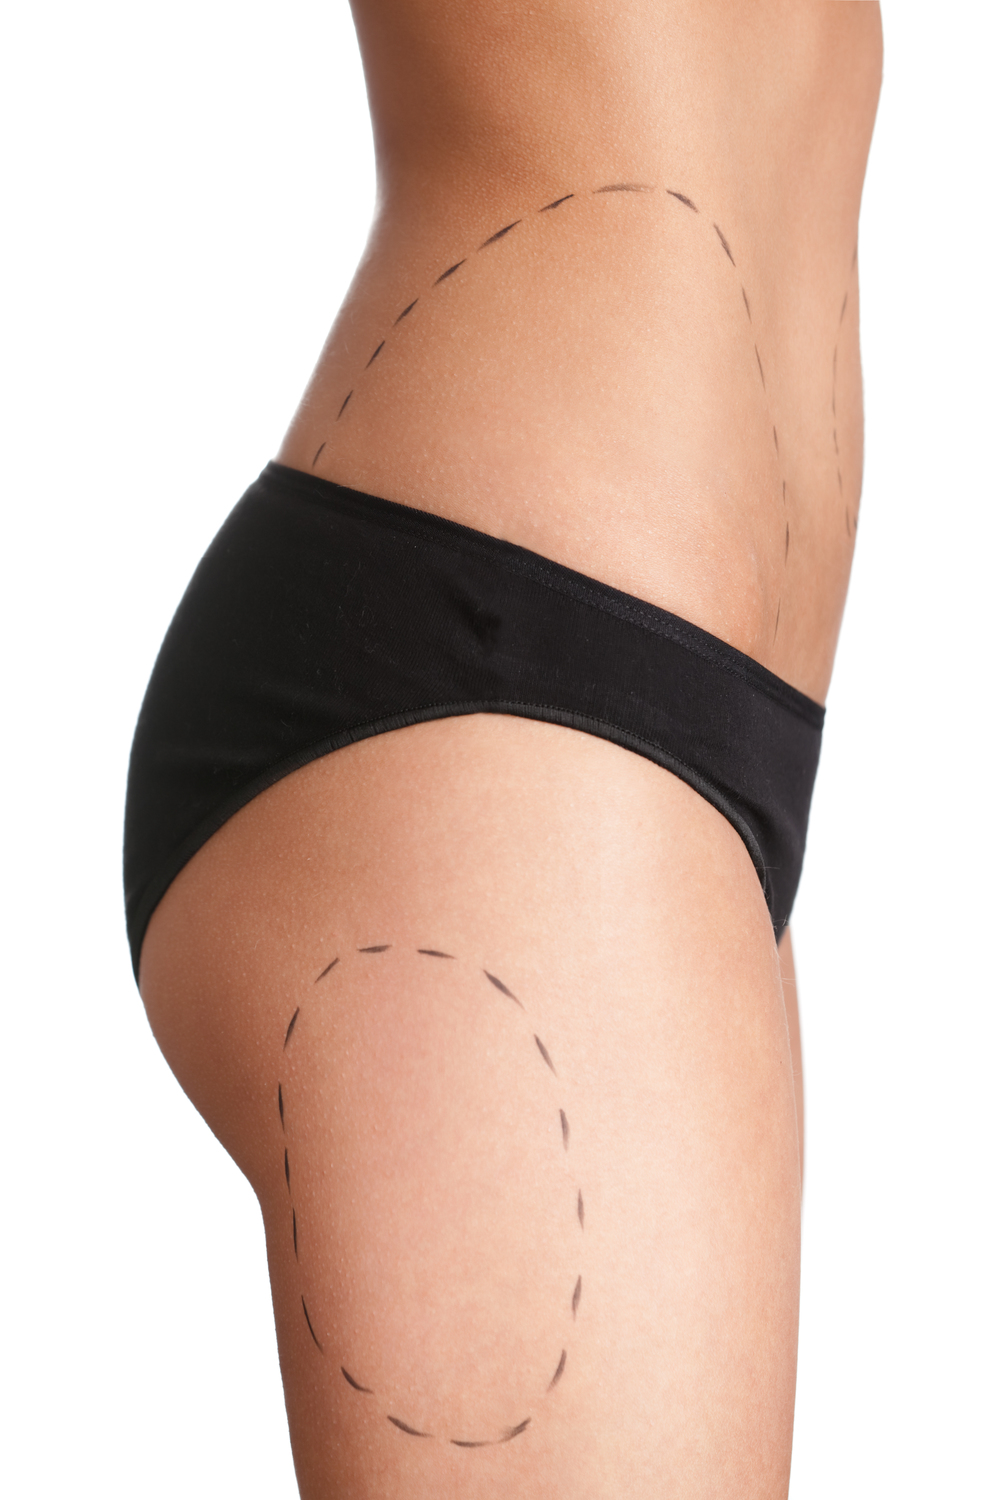 liposuction markings